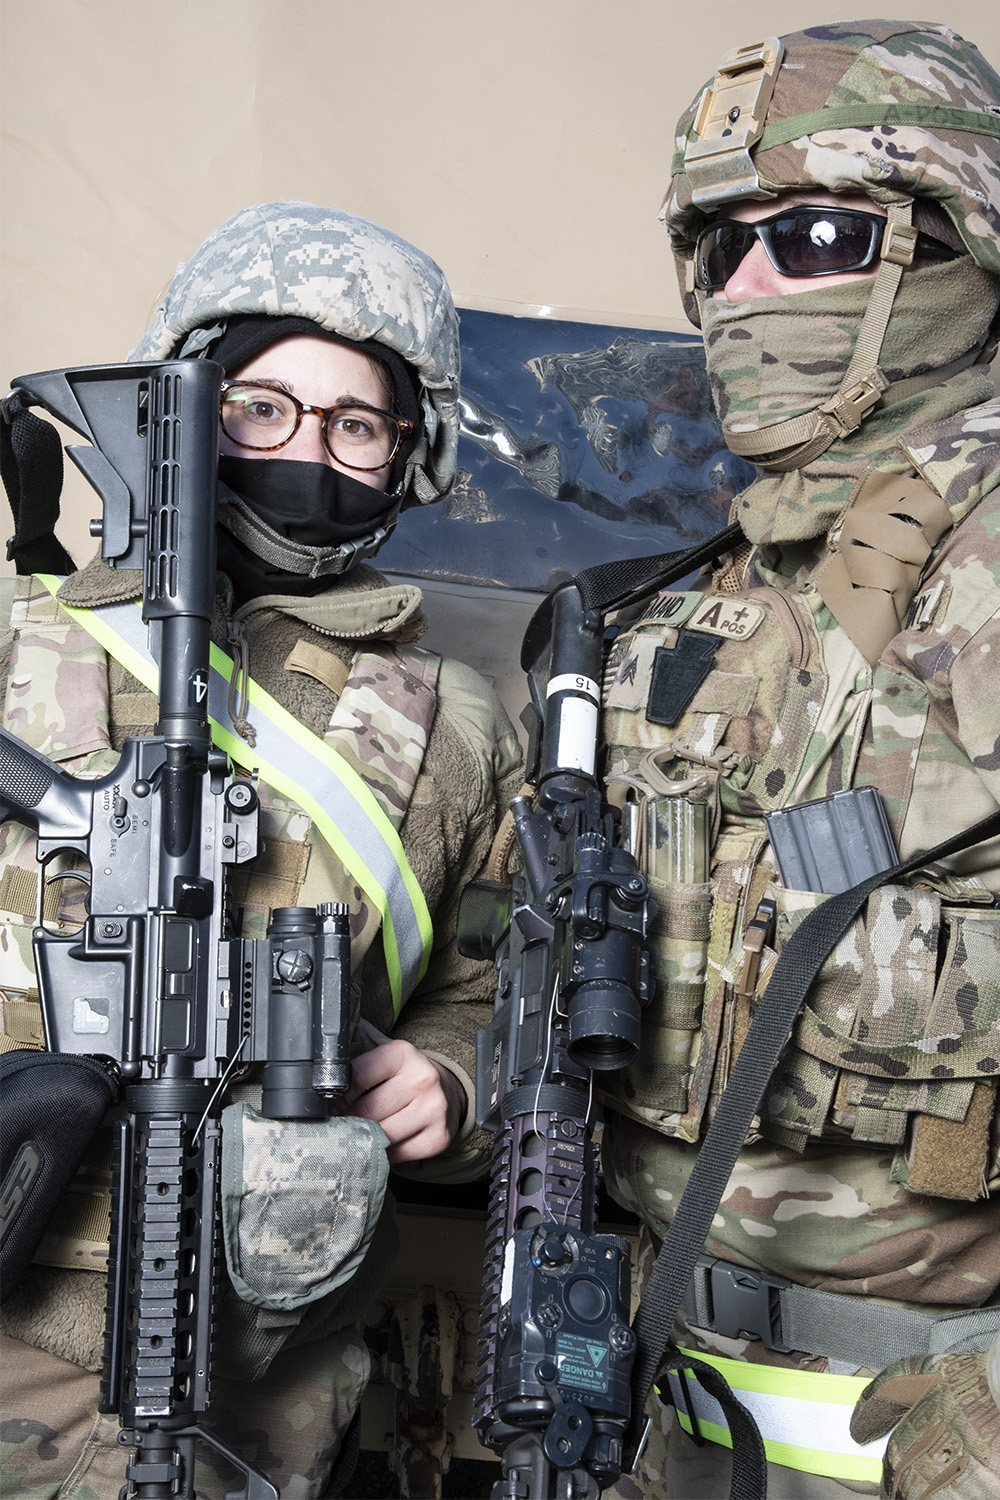 Two National Gaurdspeople, one a white female wearing glasses and one white male wearing sunglasses, wear military fatigues, helments, face coverings, and carry military rifles.